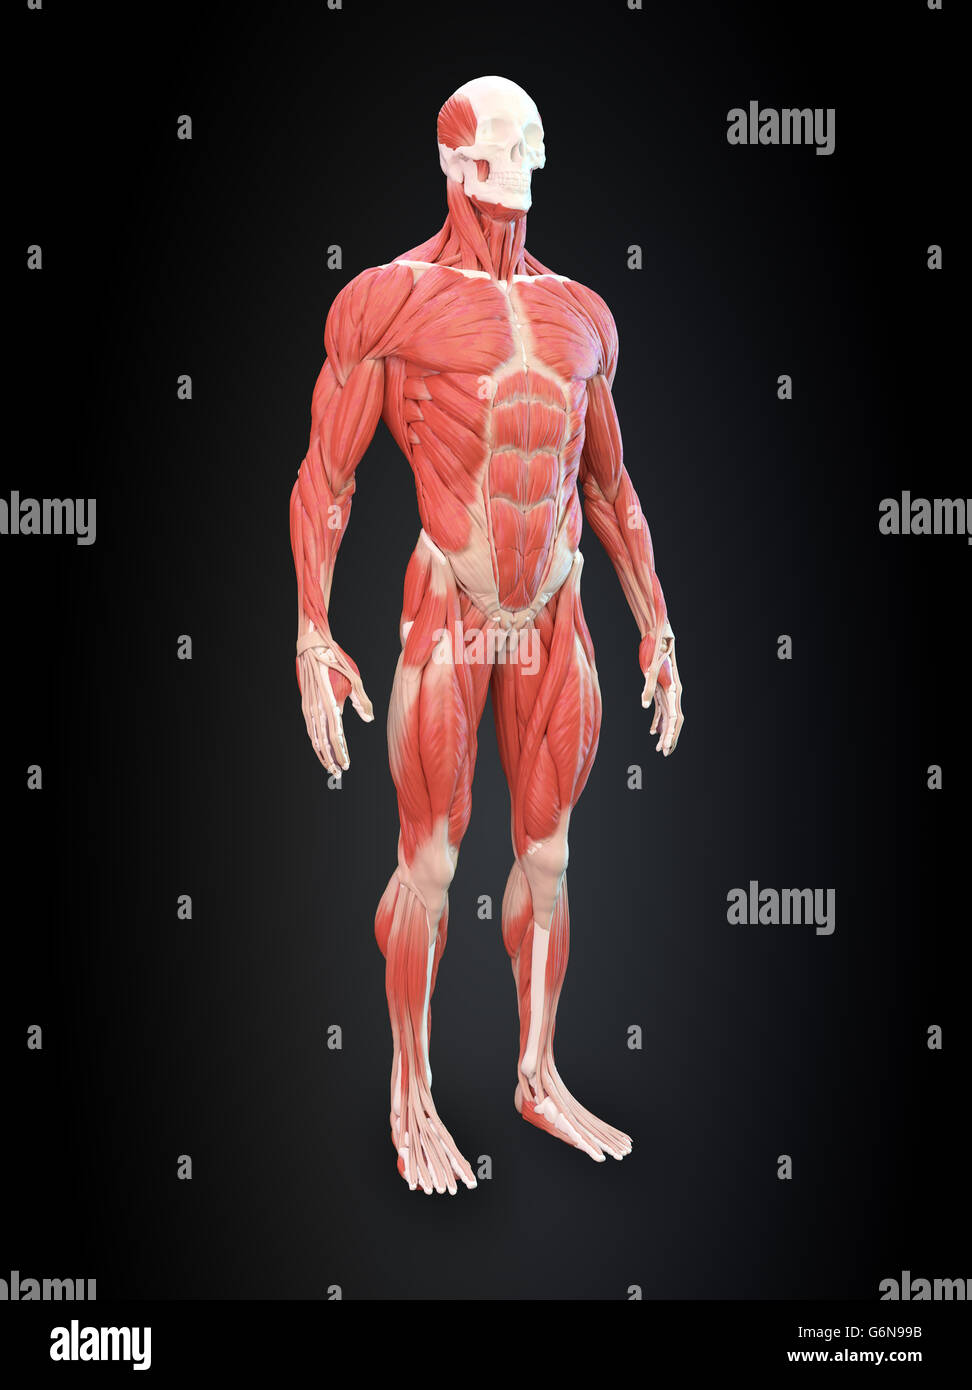 Detailed Muscle Human Anatomy Illustration Stock Photo 107418455